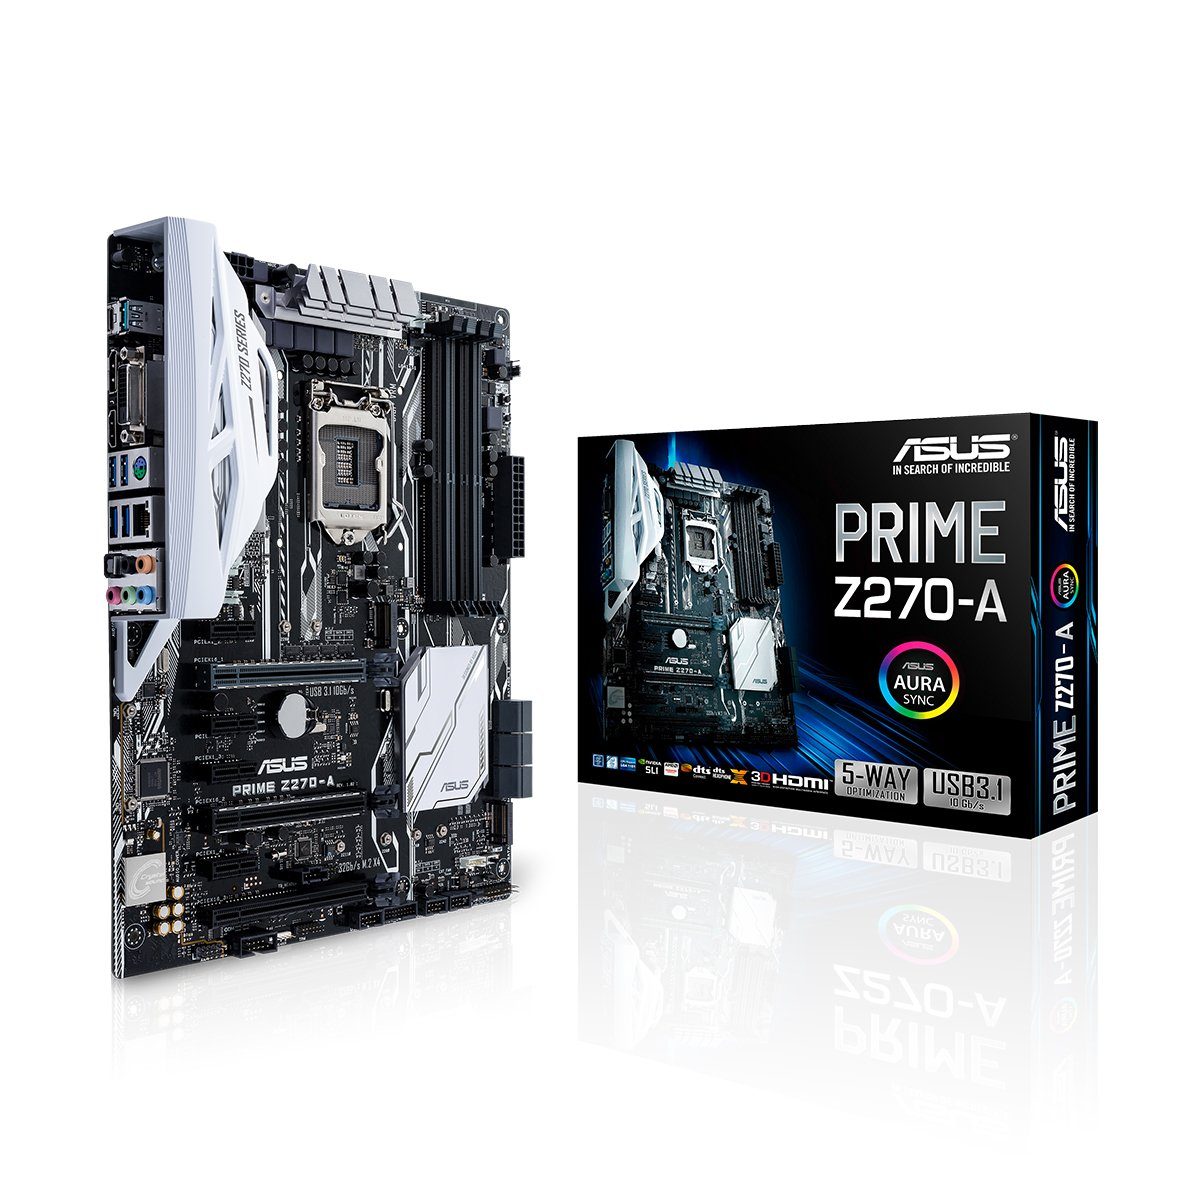 ASUS PRIME Z270-A LGA1151 DDR4 DP HDMI DVI M.2 USB 3.1 Z270 ATX Motherboard by Asus